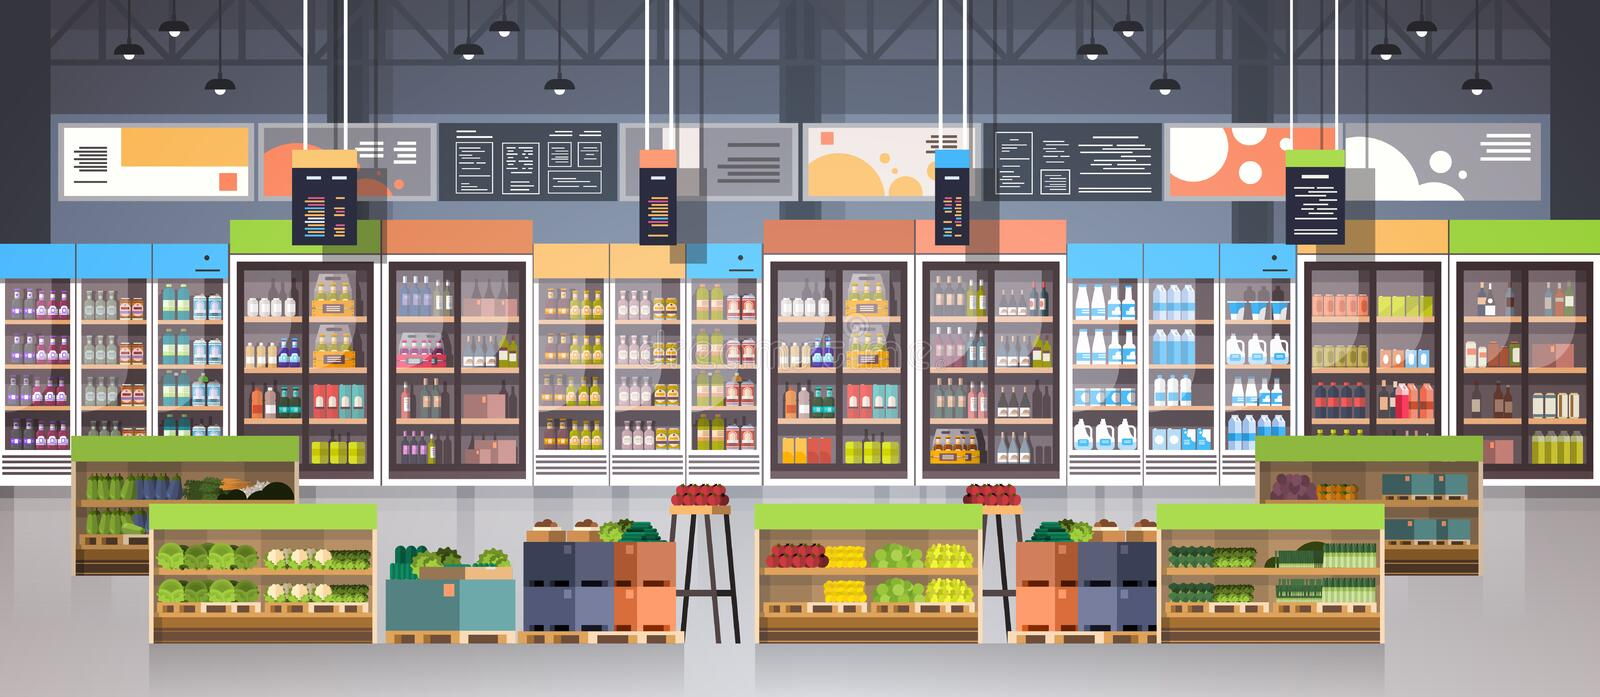 Supermarket Aisle With Shelves, Grocery Items, Shopping, Retail And Consumerism Concept vector illustration